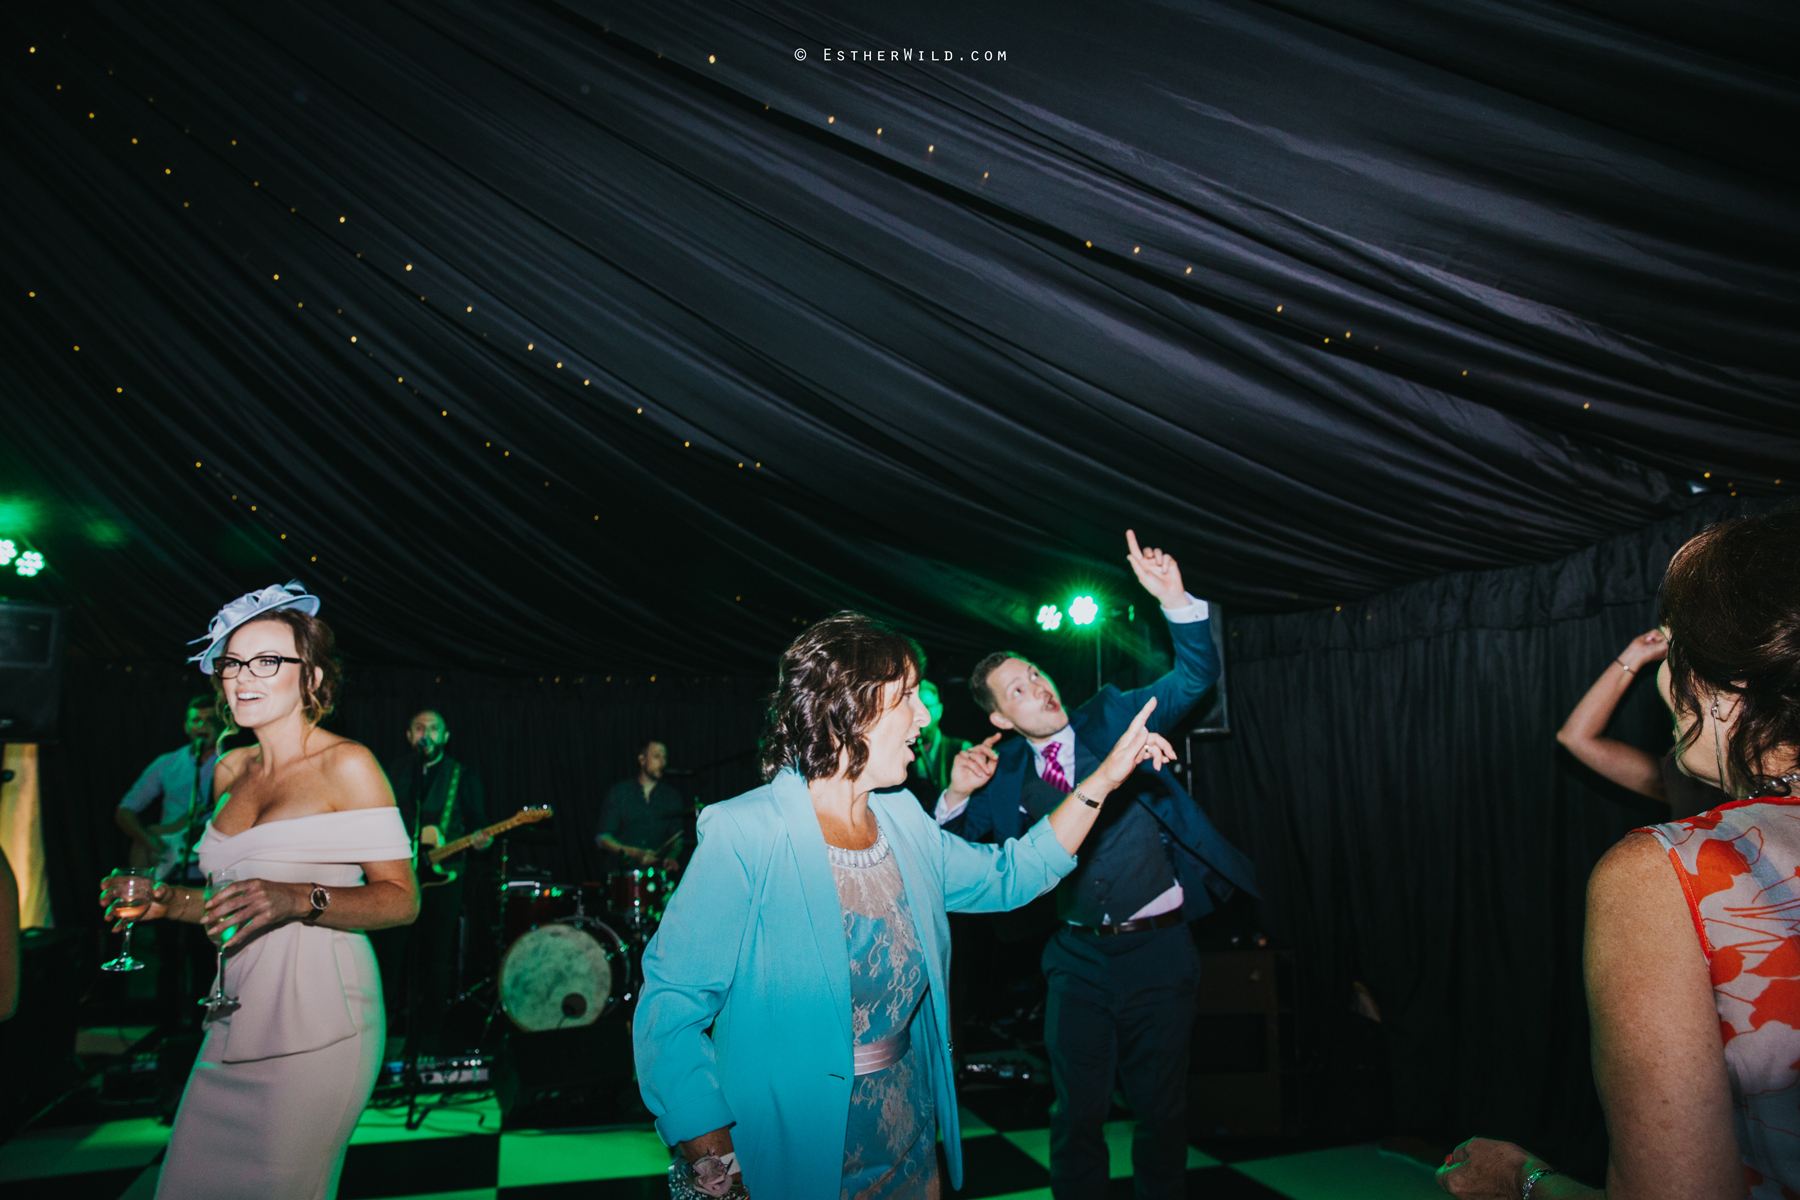 Wootton_Wedding_Copyright_Esther_Wild_Photographer_IMG_3551.jpg